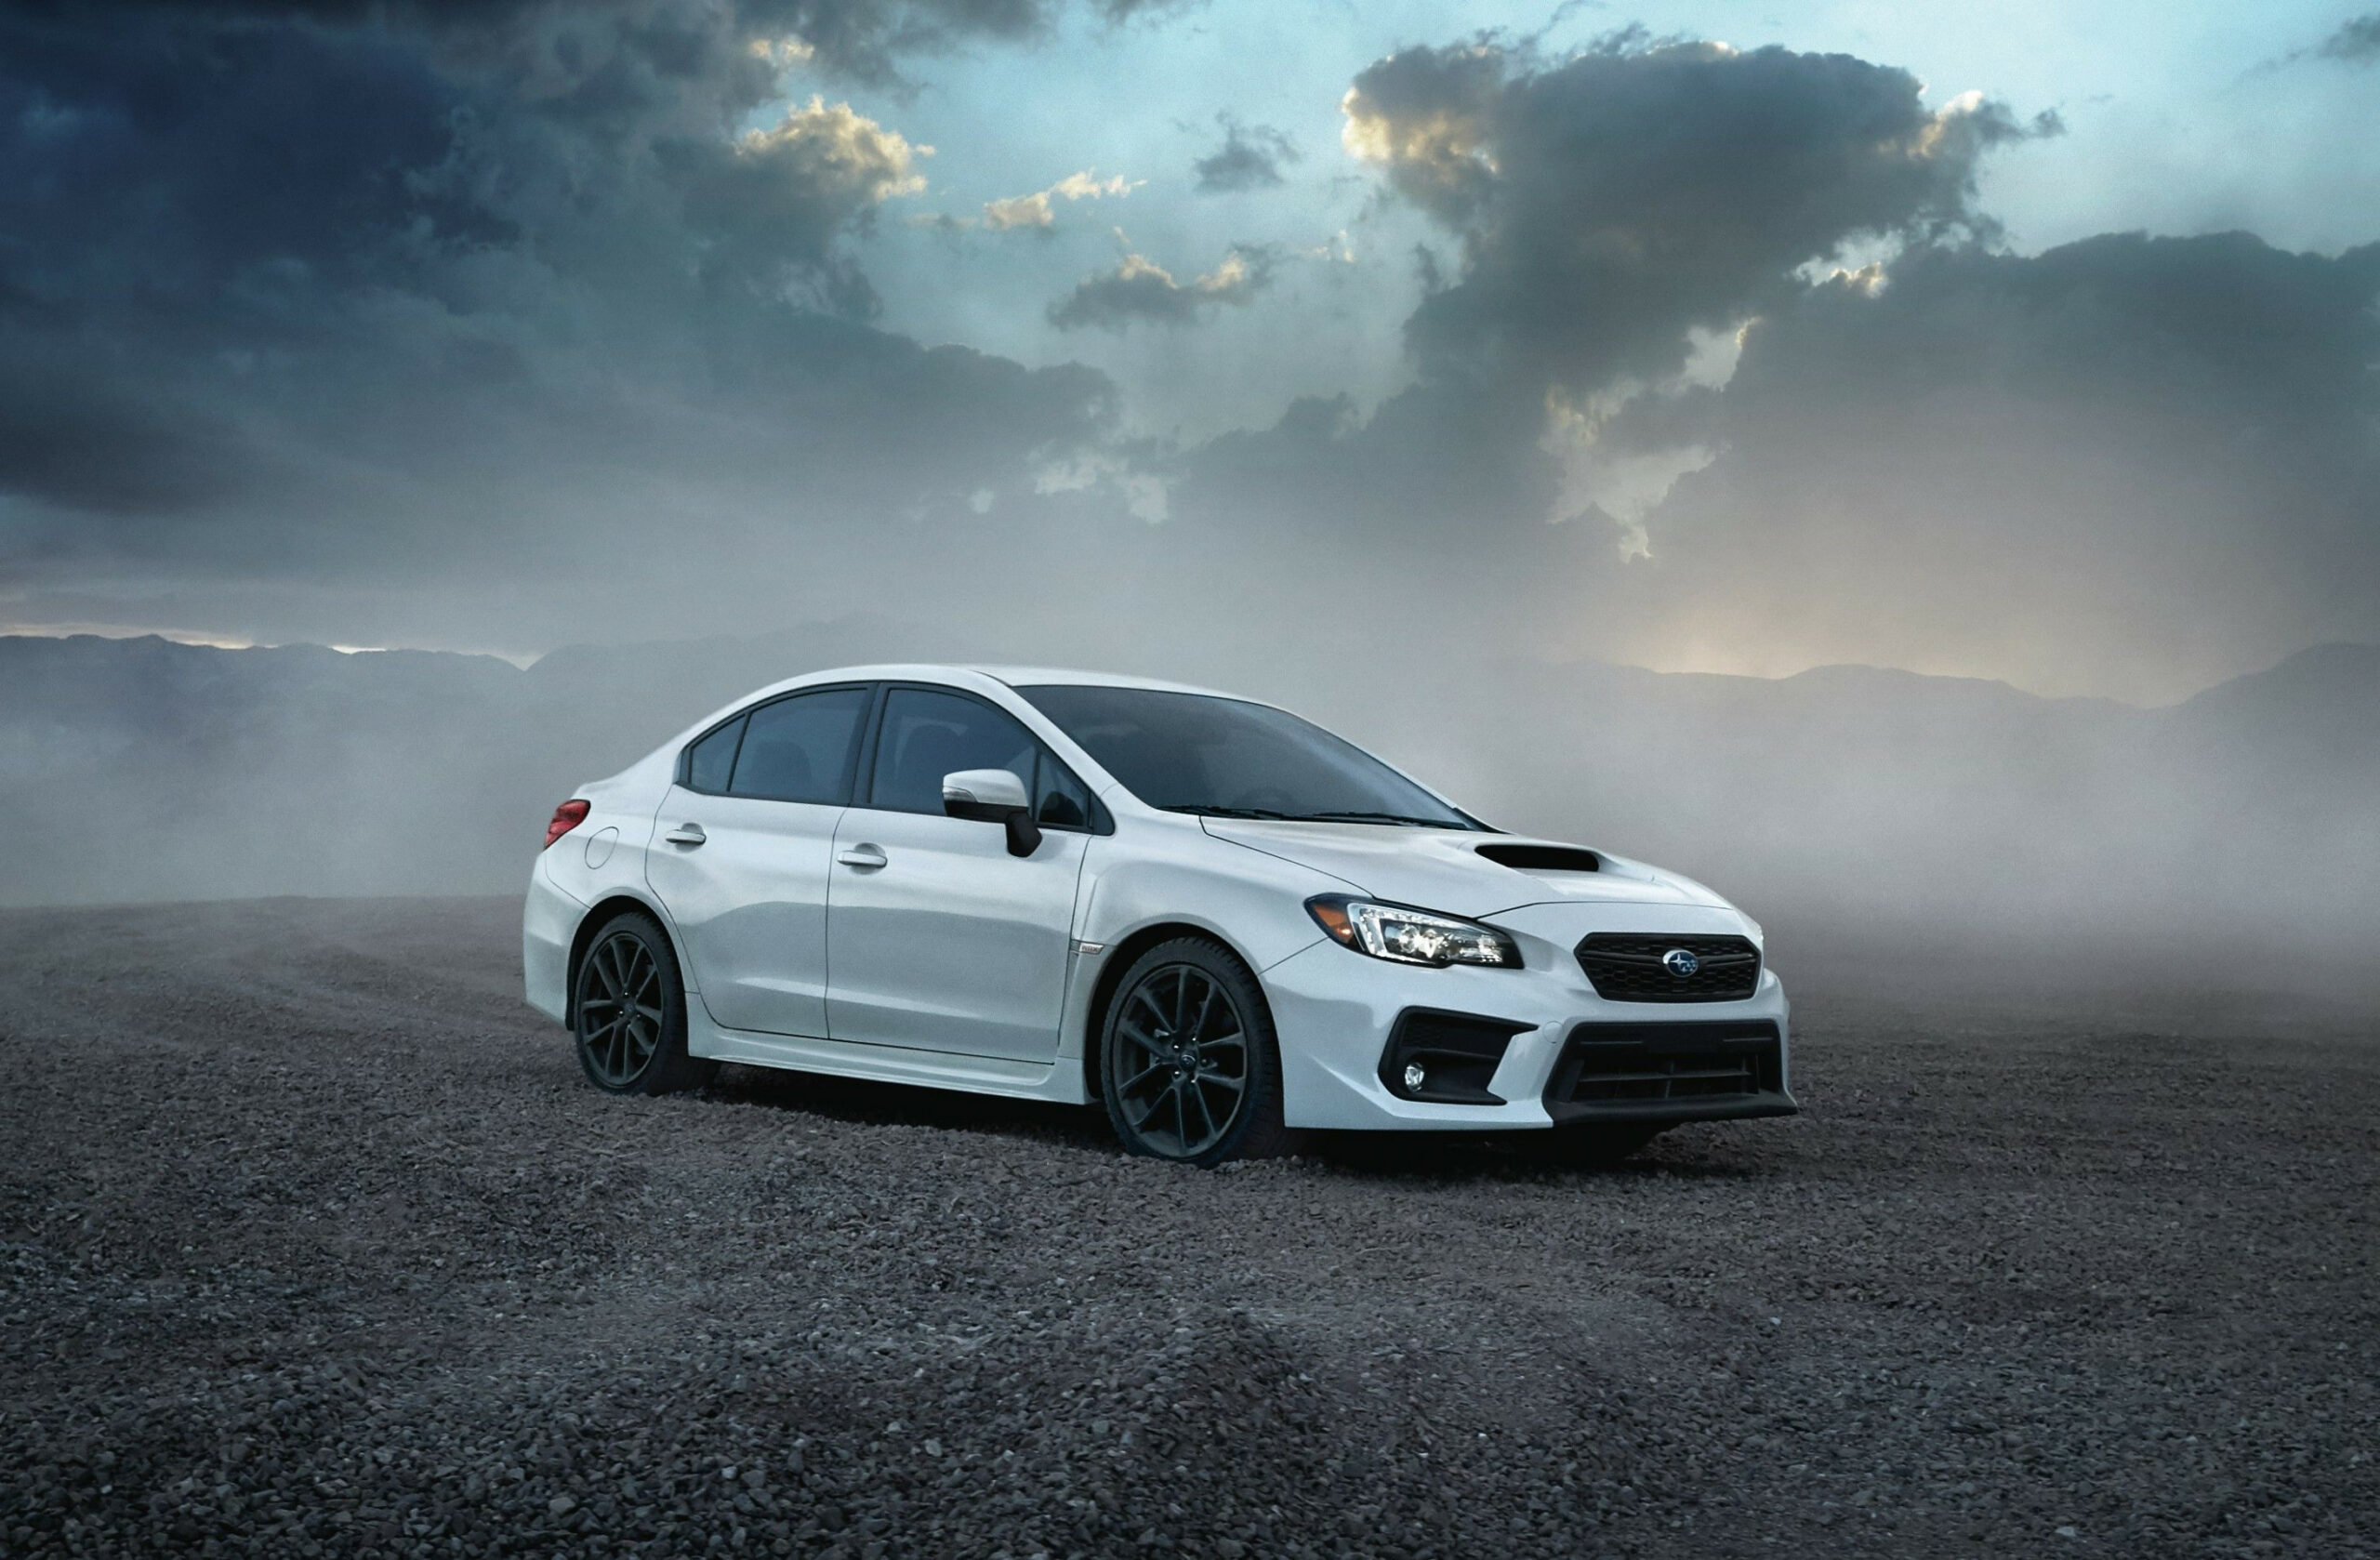 8 Subaru WRX Review, Pricing, and Specs - 2020 subaru impreza specs